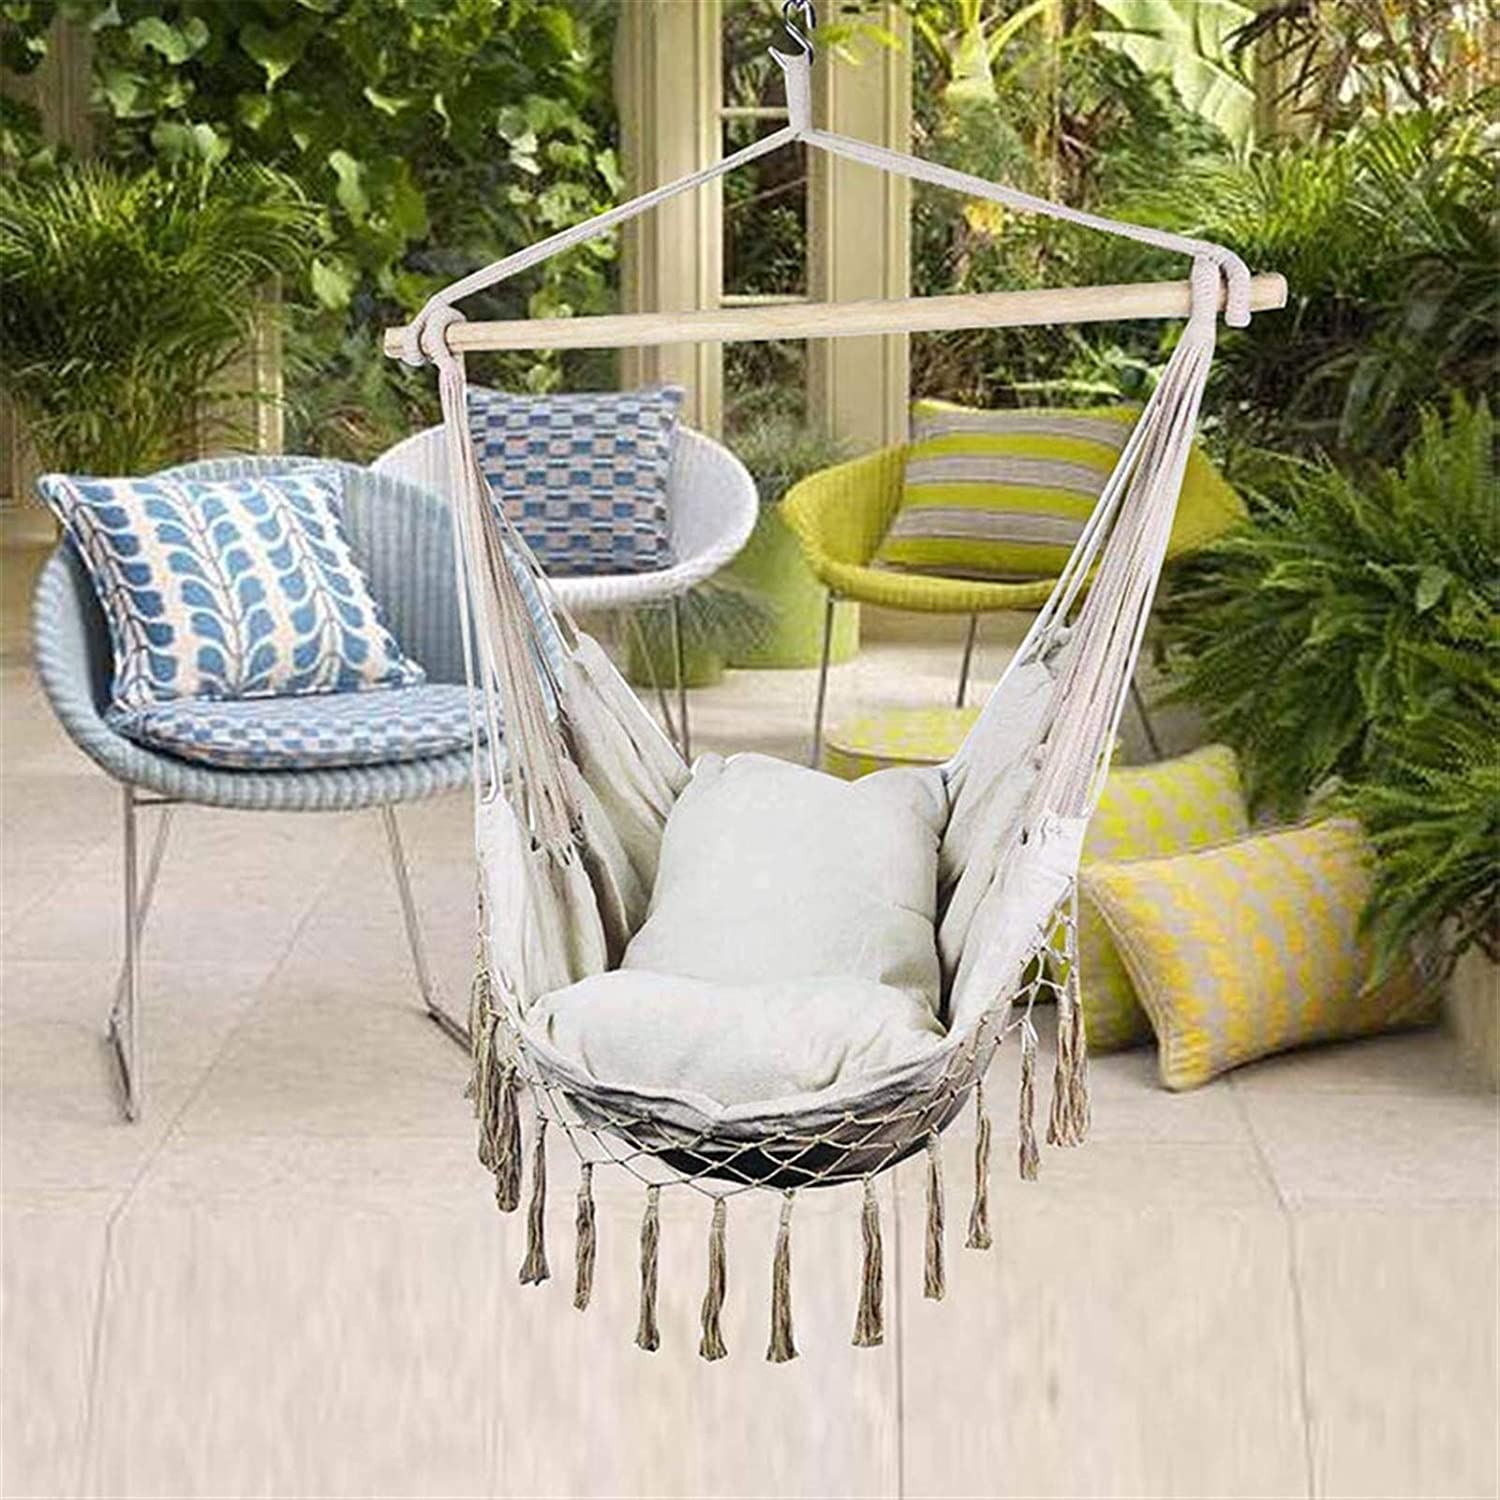 Brting Charlotte Mall Macrame Lounging Hanging Rope Porch Hammock Chair S Swing Popular overseas